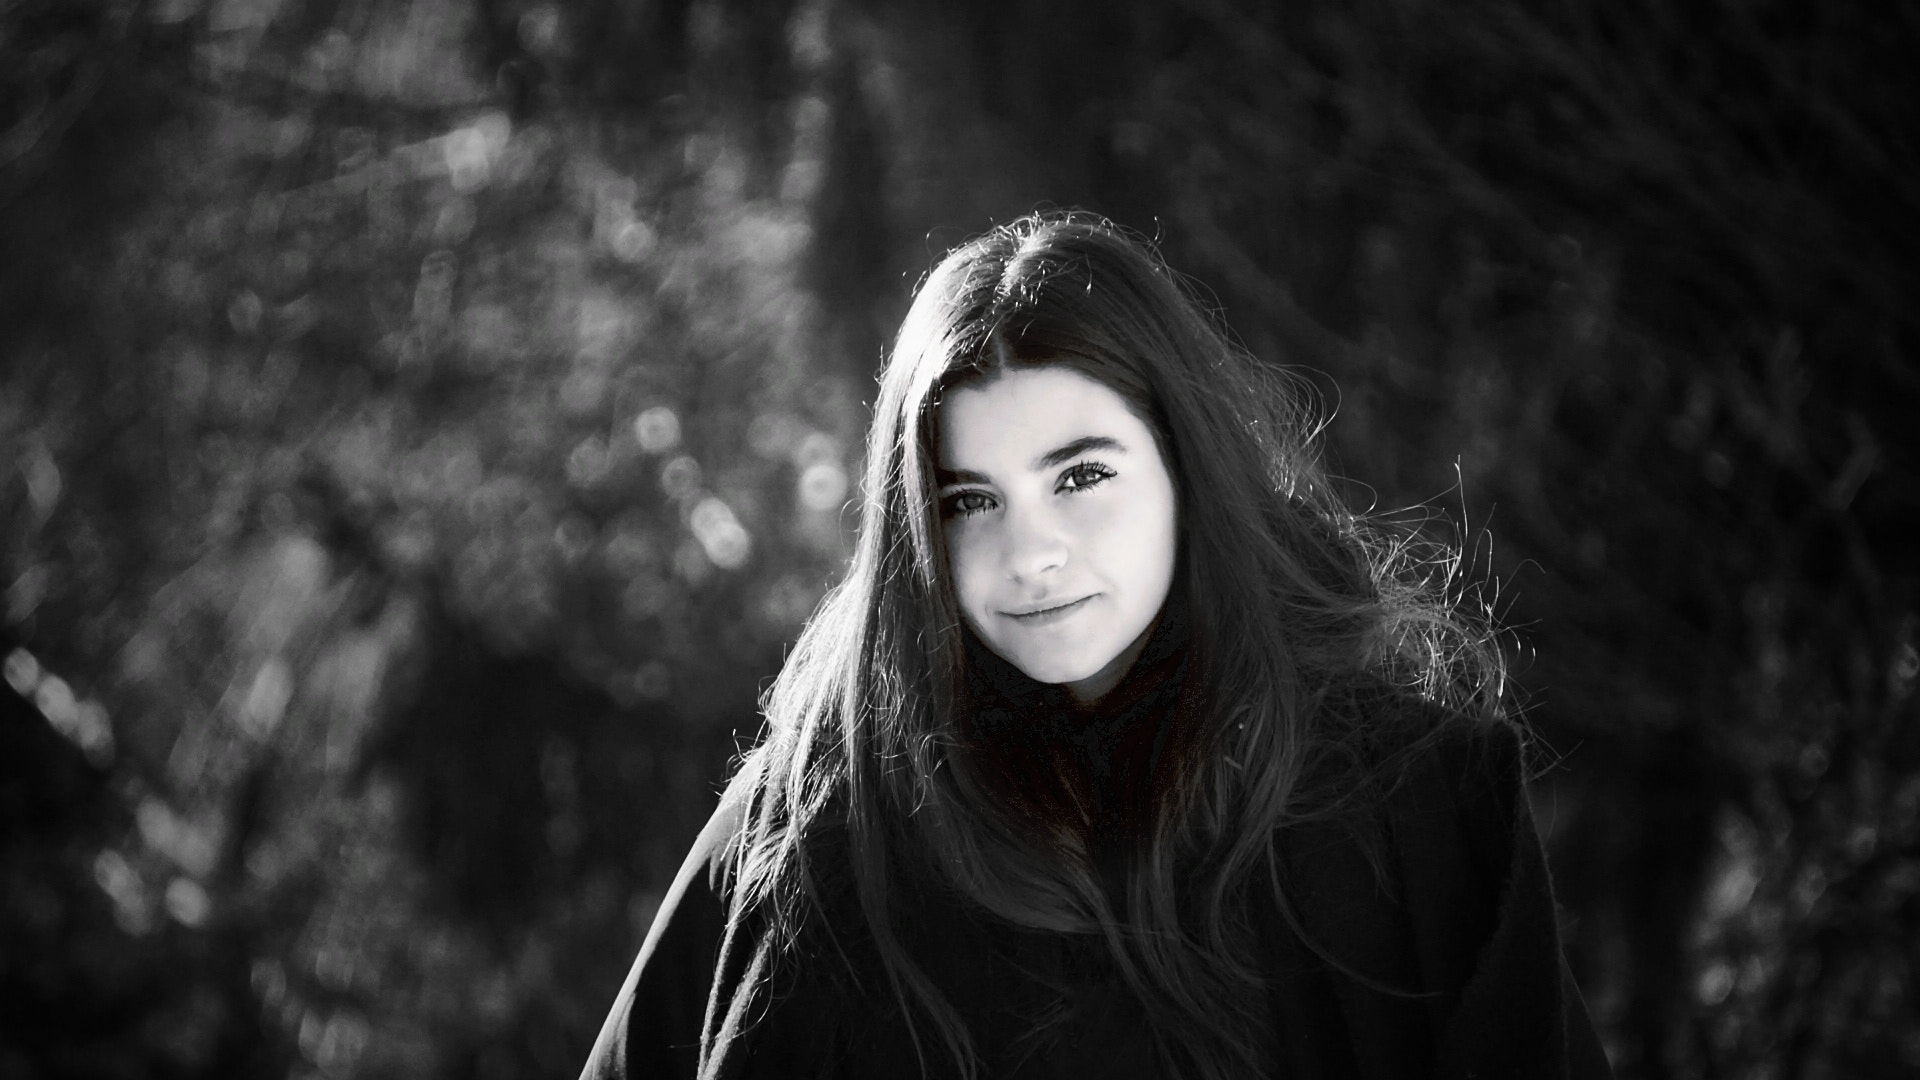 Grayscale Photo of Woman Wearing Coat Surrounded With Trees, Lady, Young, Woman, Skin, HQ Photo